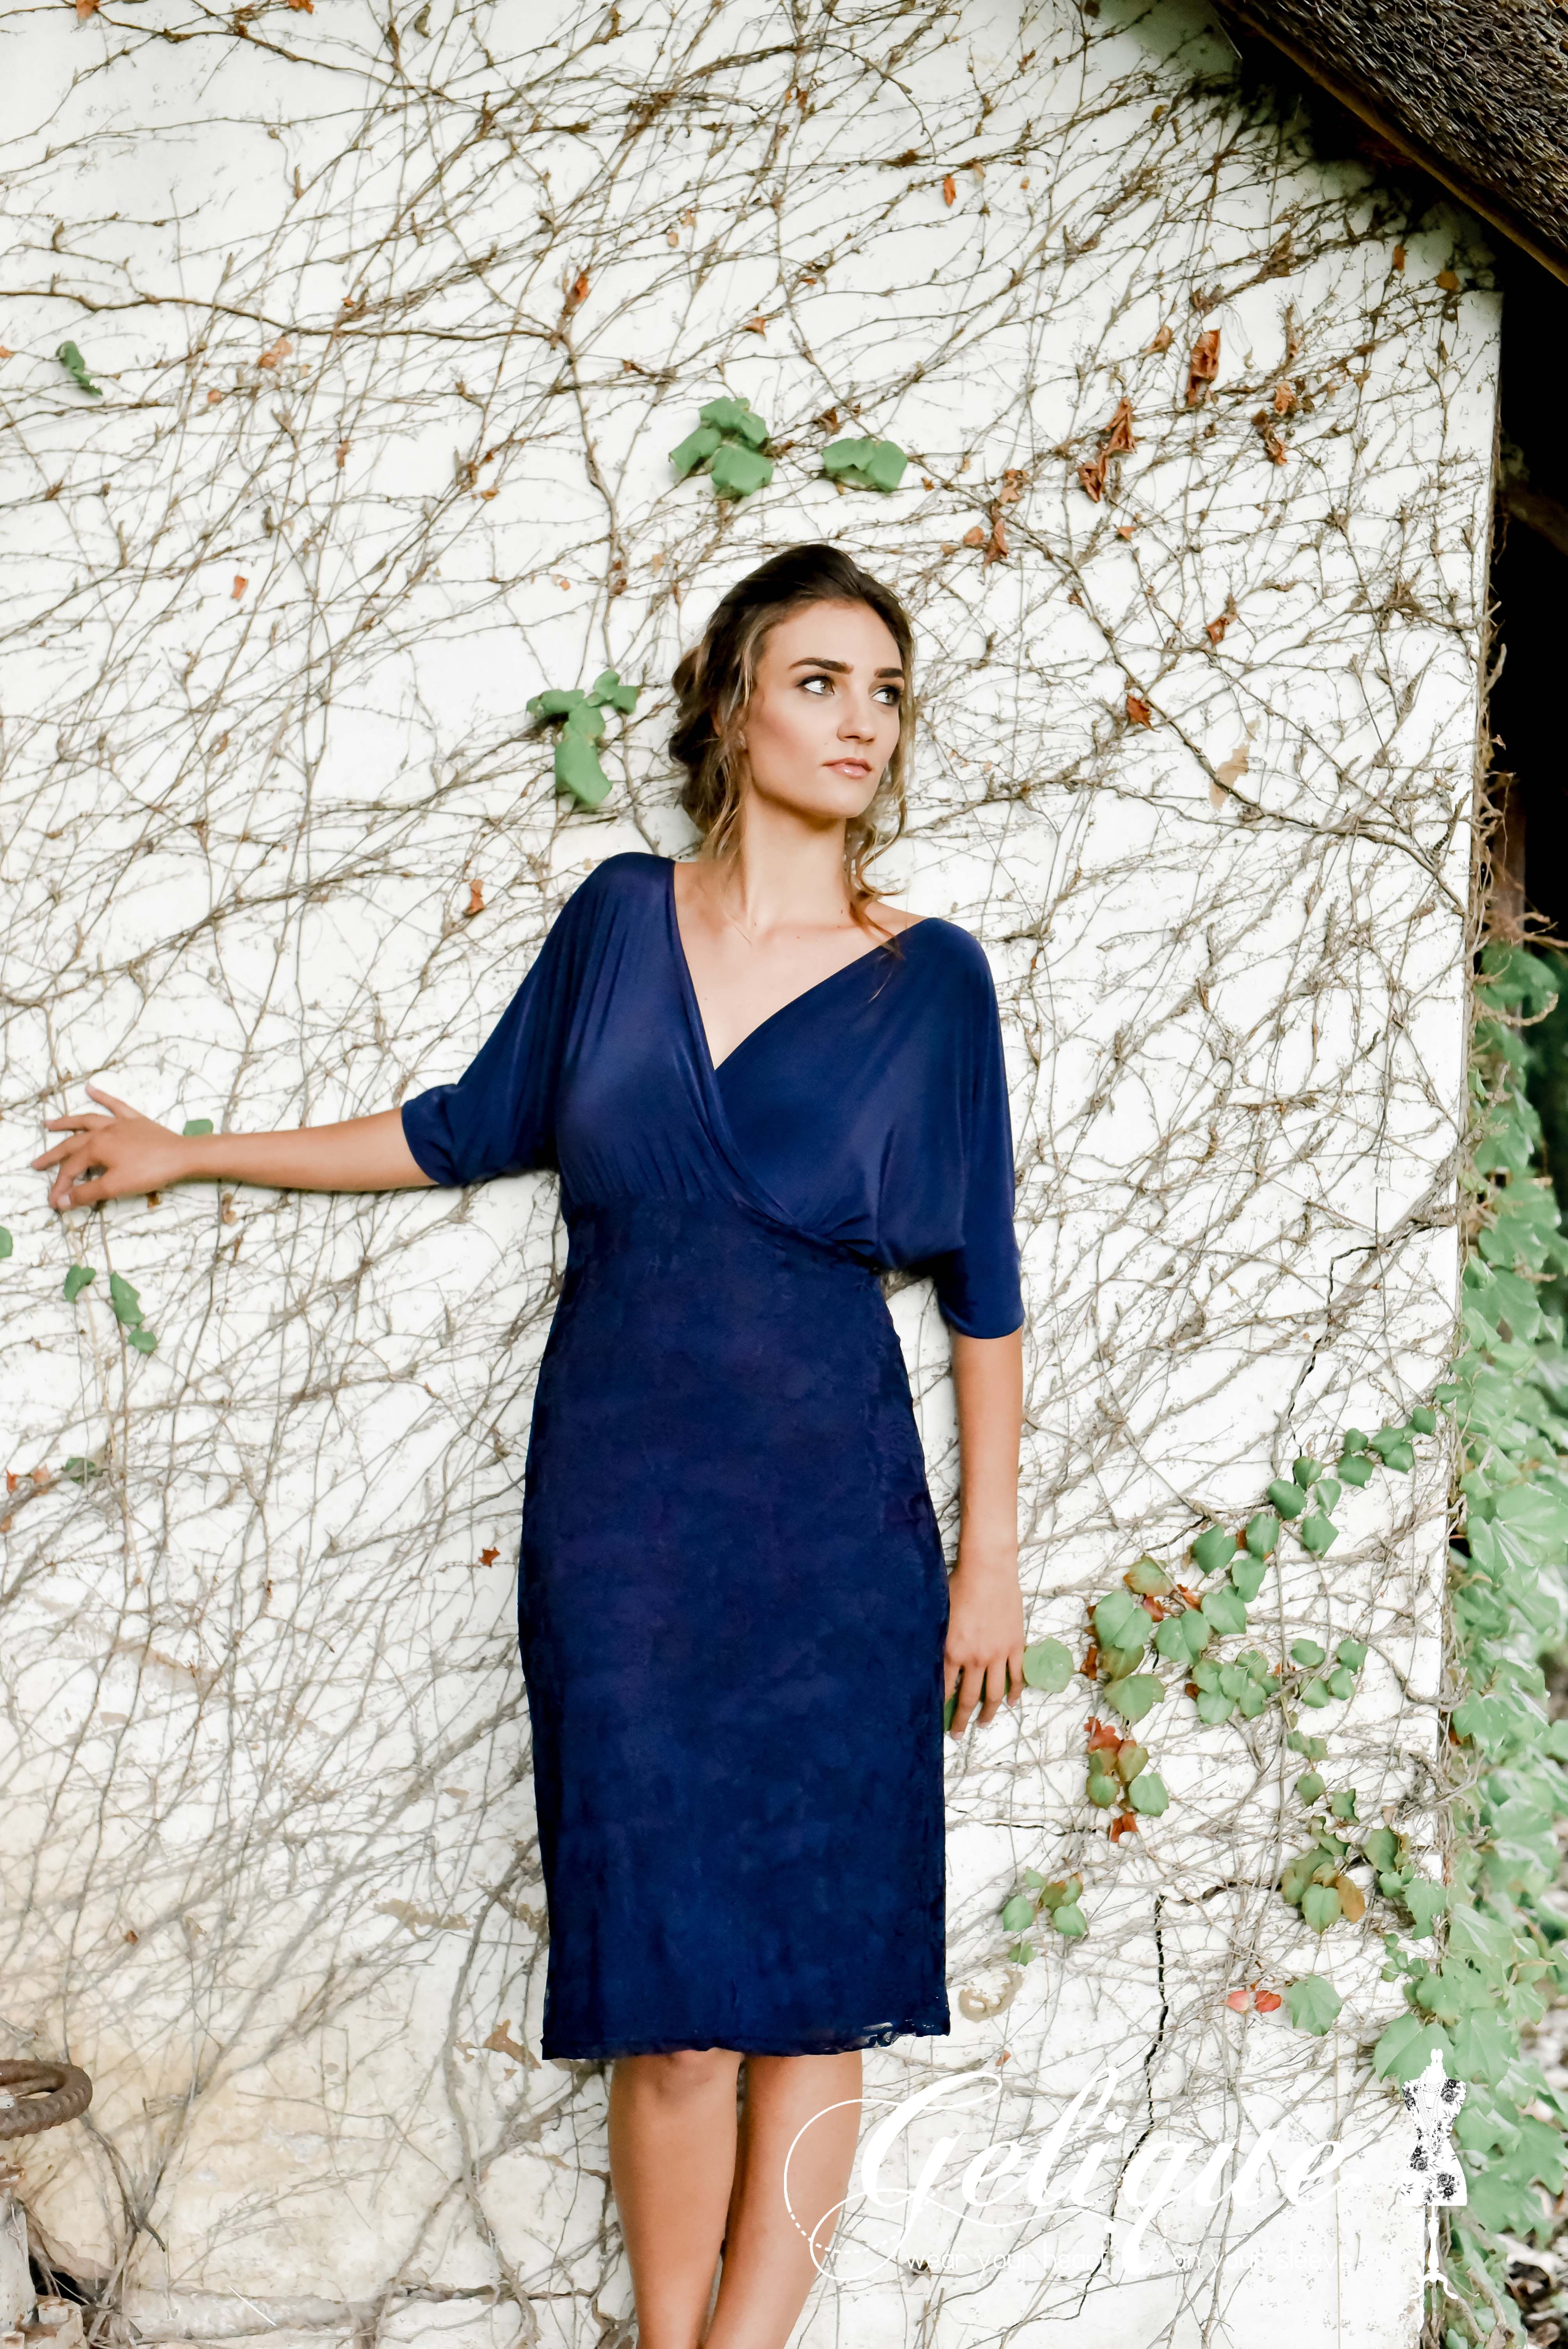 Juliet design Gelique bridesmaids dress. Navy bridesmaids dress. Flair sleeves. Plunging neckline and revealing back, the Juliet Dress will definetely make a bold statement..  Available in a variety of sizes and colours from Brides of Somerset. Long, knee-length or short available. Knee length bridesmaids dress.